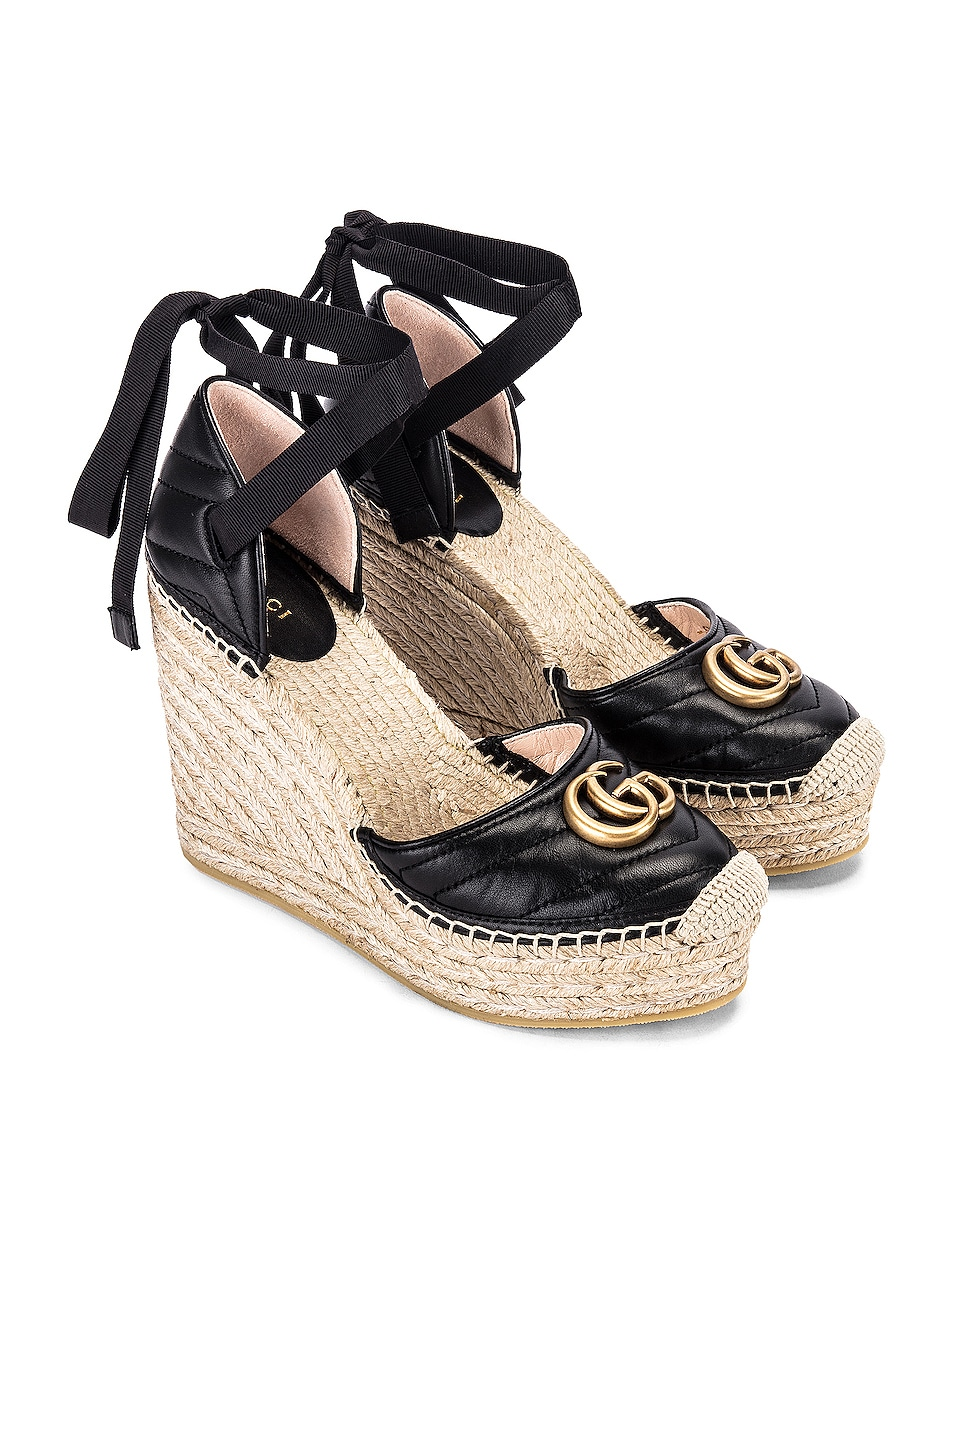 Image 1 of Gucci Leather Platform Espadrille Wedges in Black